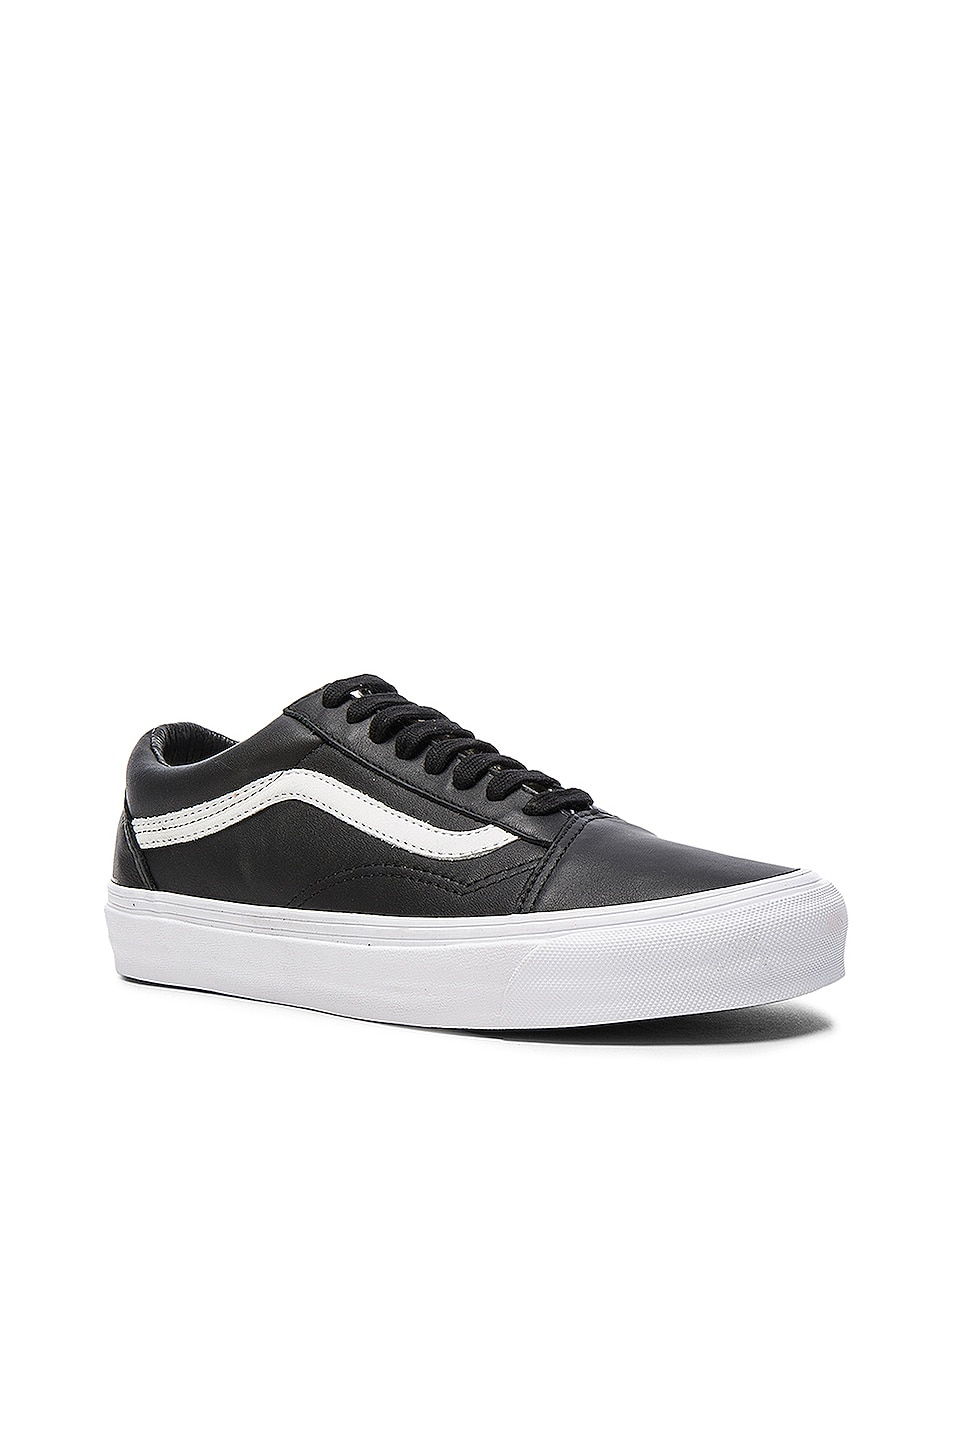 5de60f0202dc31 Image 2 of Vans Vault OG Leather Old Skool LX in Black